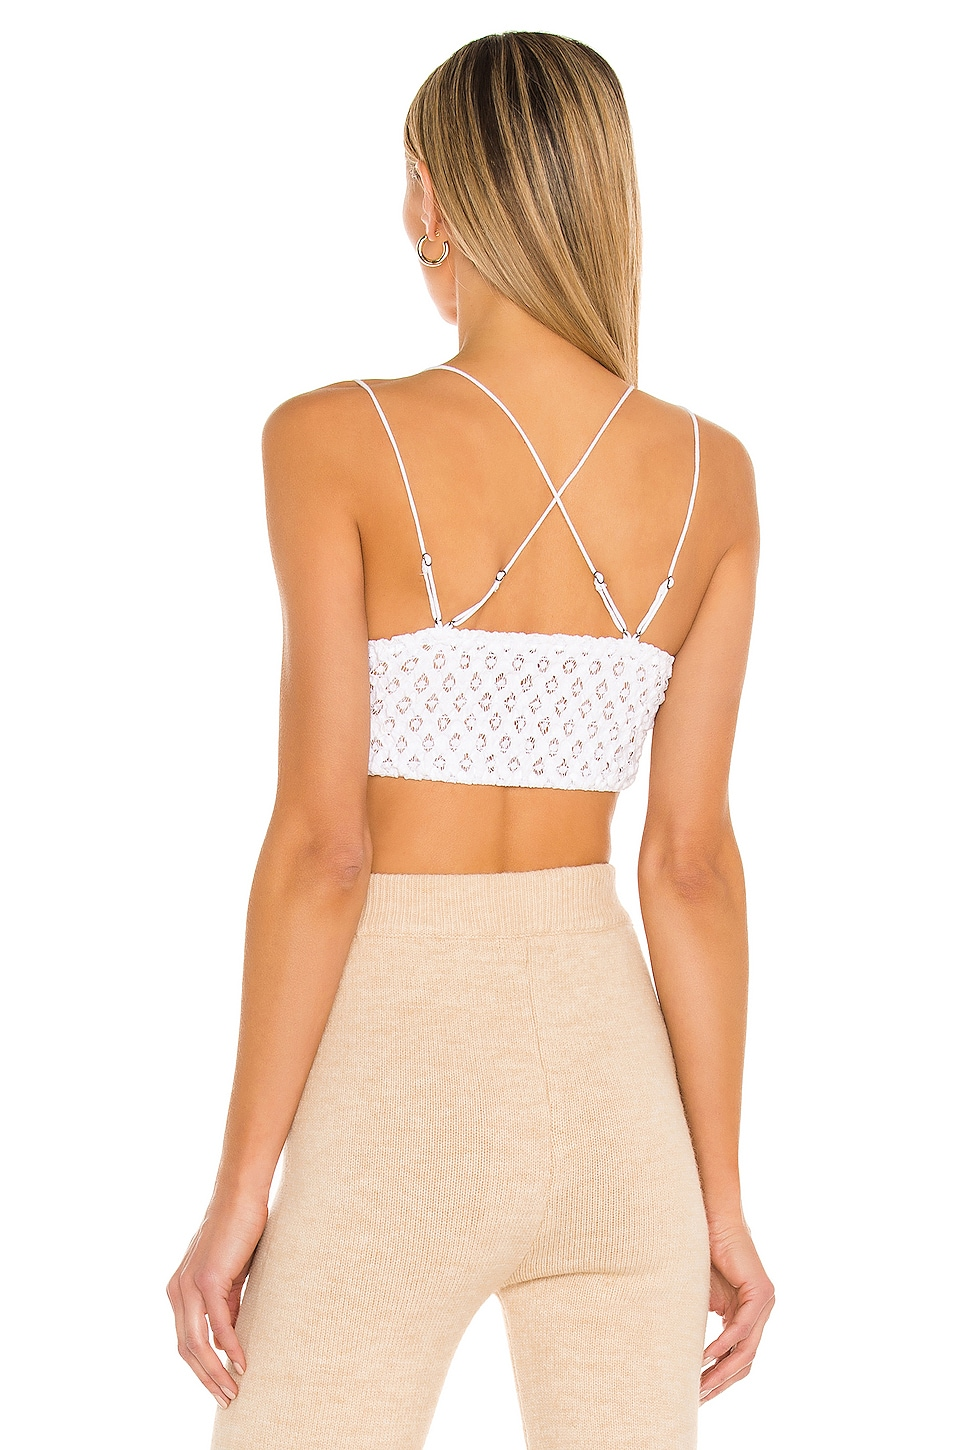 Adella Bralette, view 4, click to view large image.